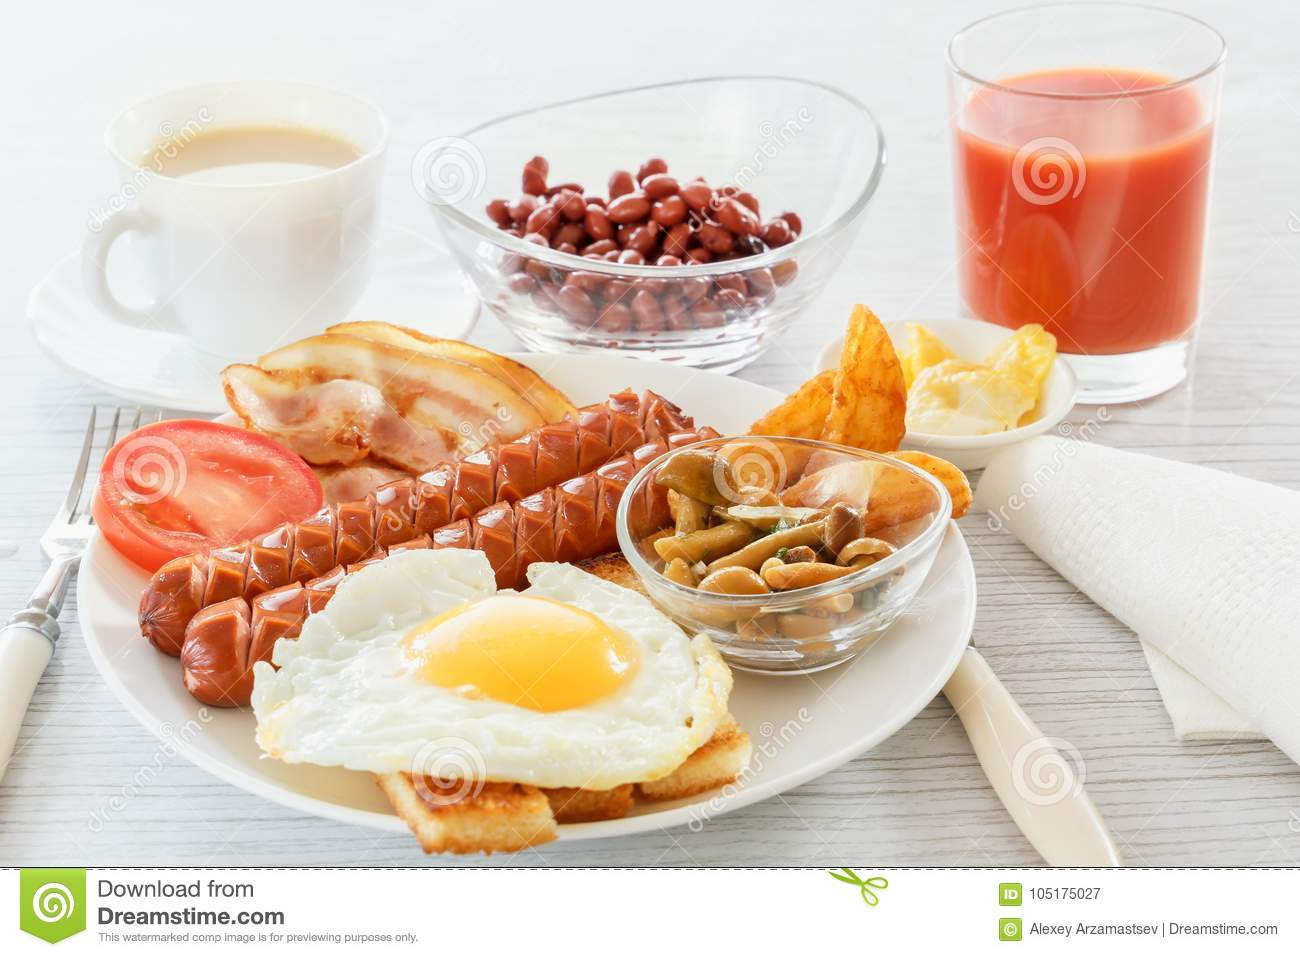 Full English breakfast with smoked sausages, fried egg, bacon, tomato, toast and beans. Tea with milk. A glass of fresh juice